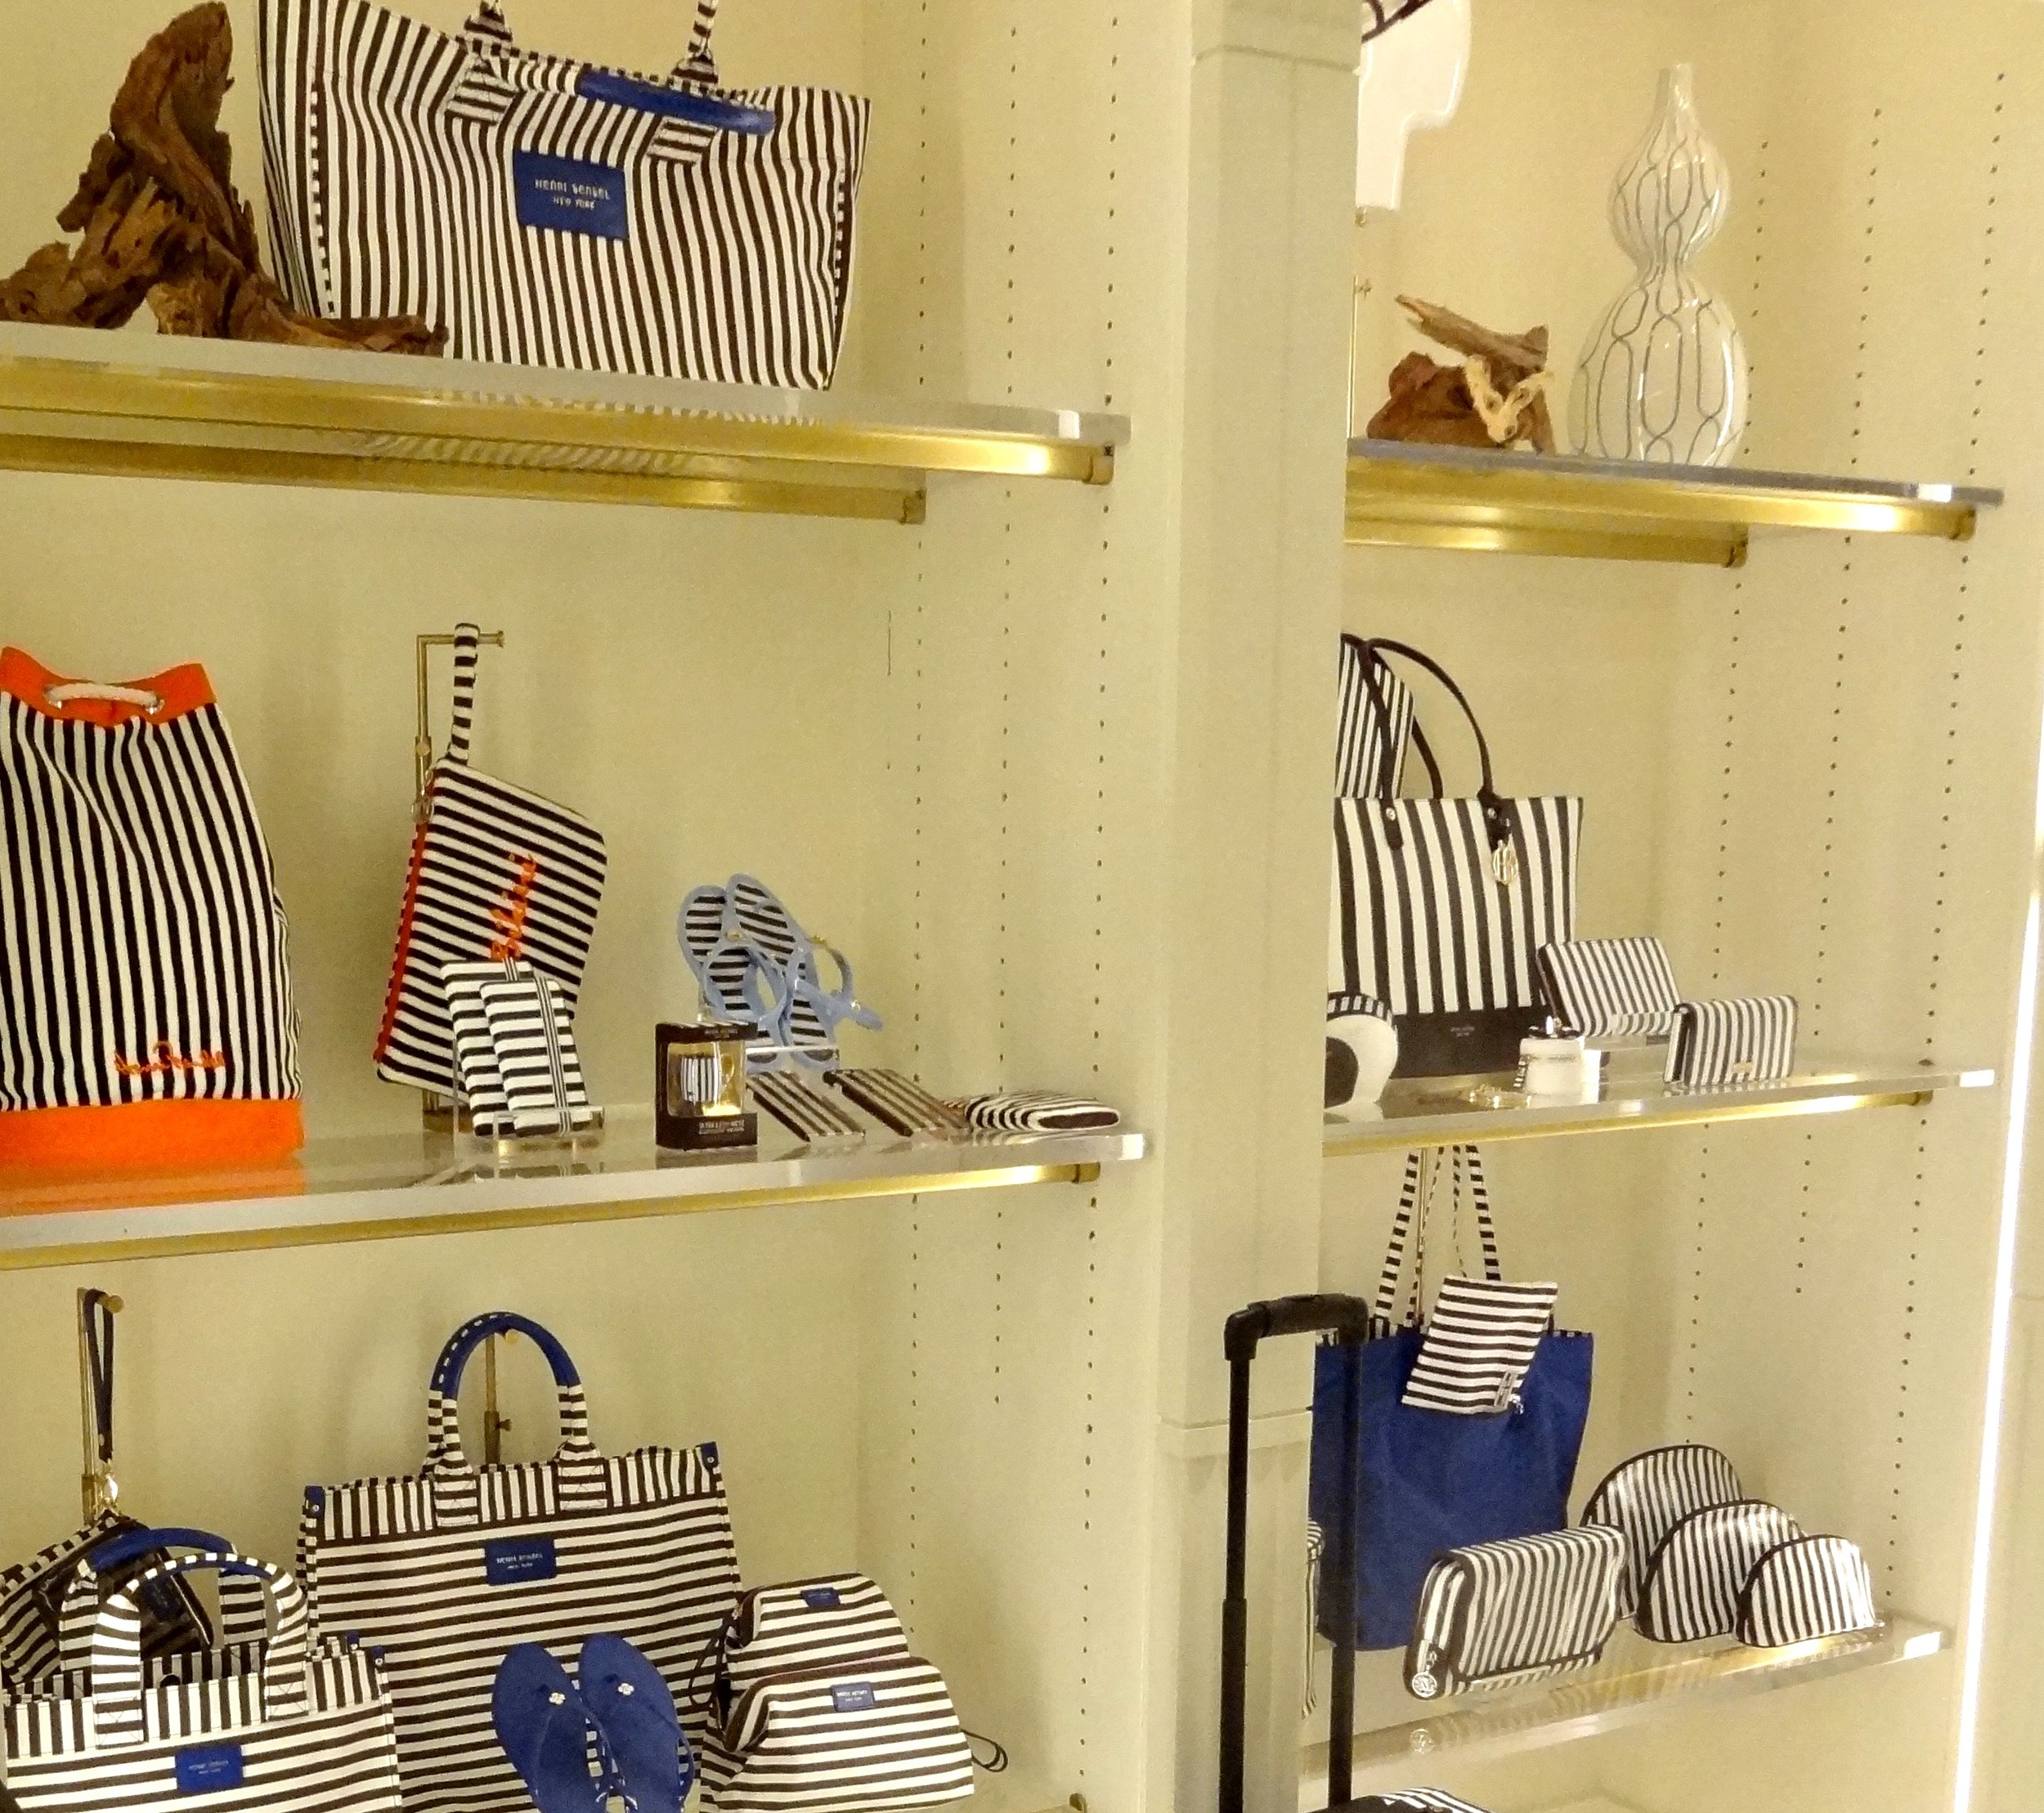 Henri Bendel Summer Spring Preview 2016 Louboutins & Love Fashion Blog Esther Santer Bucket Bag Orange Hot Pink Backpack Purse Structured Bag Wallet Collection Designer OOTD Outfit Stripes Travel Jetsetter Jewelry Red Blue Luggage Pom Pom Beach Tote.jpg